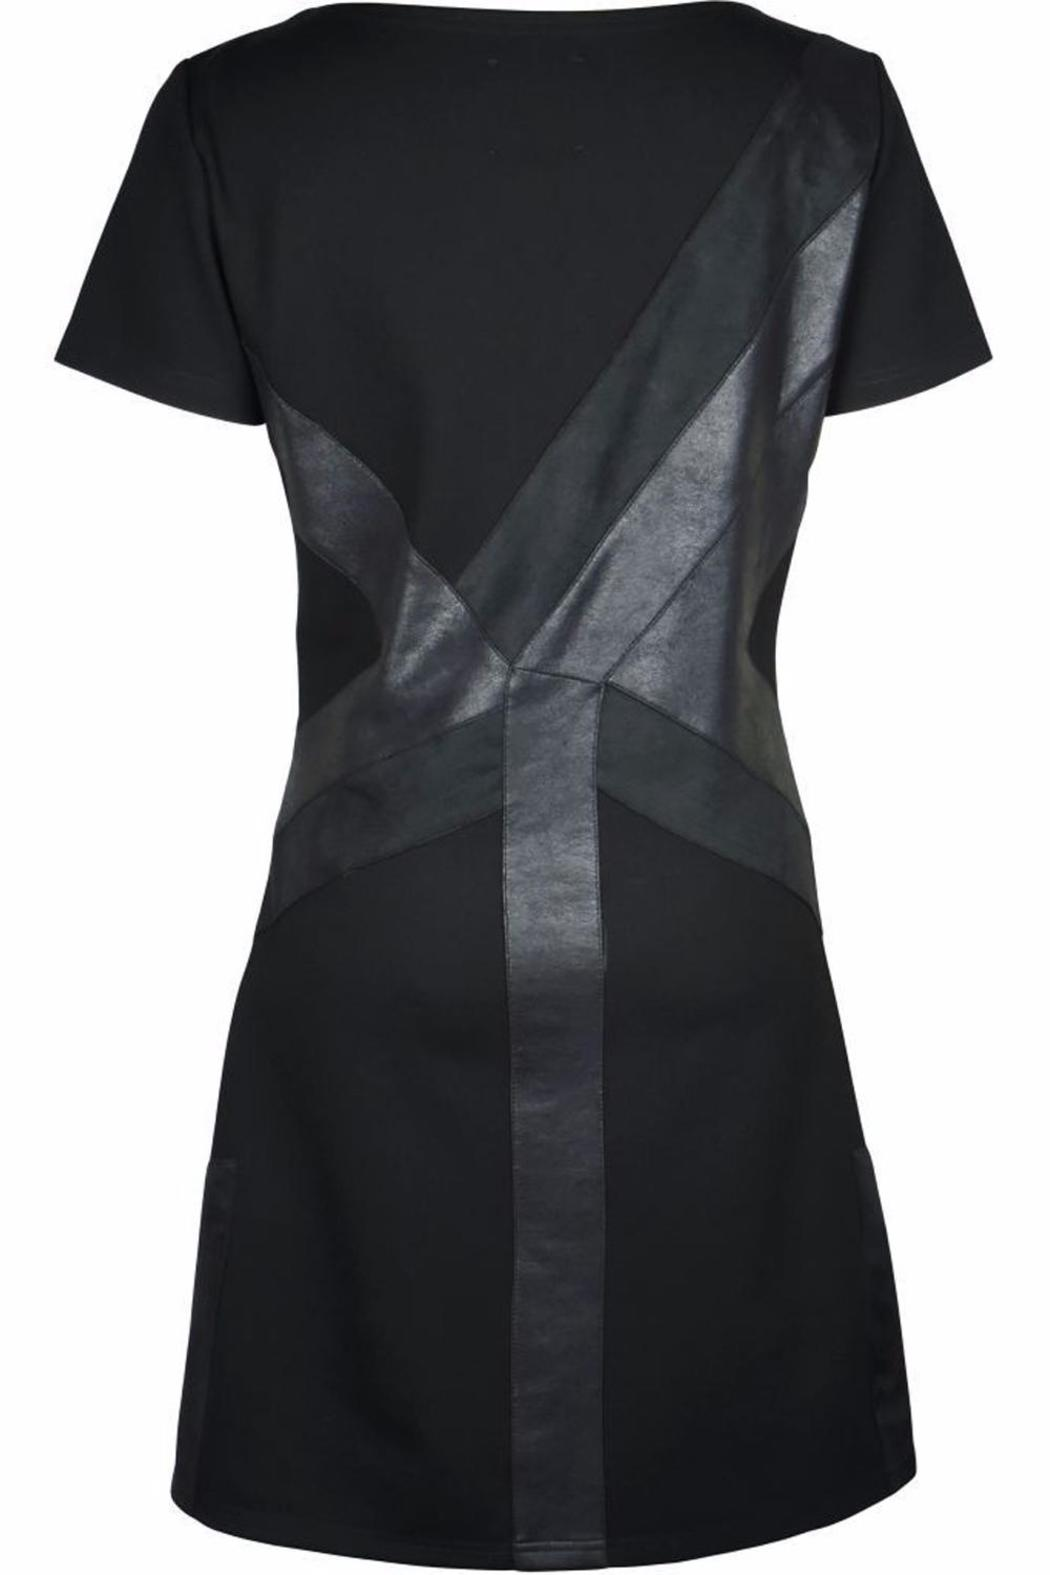 NU Denmark Black Geometric Dress - Main Image